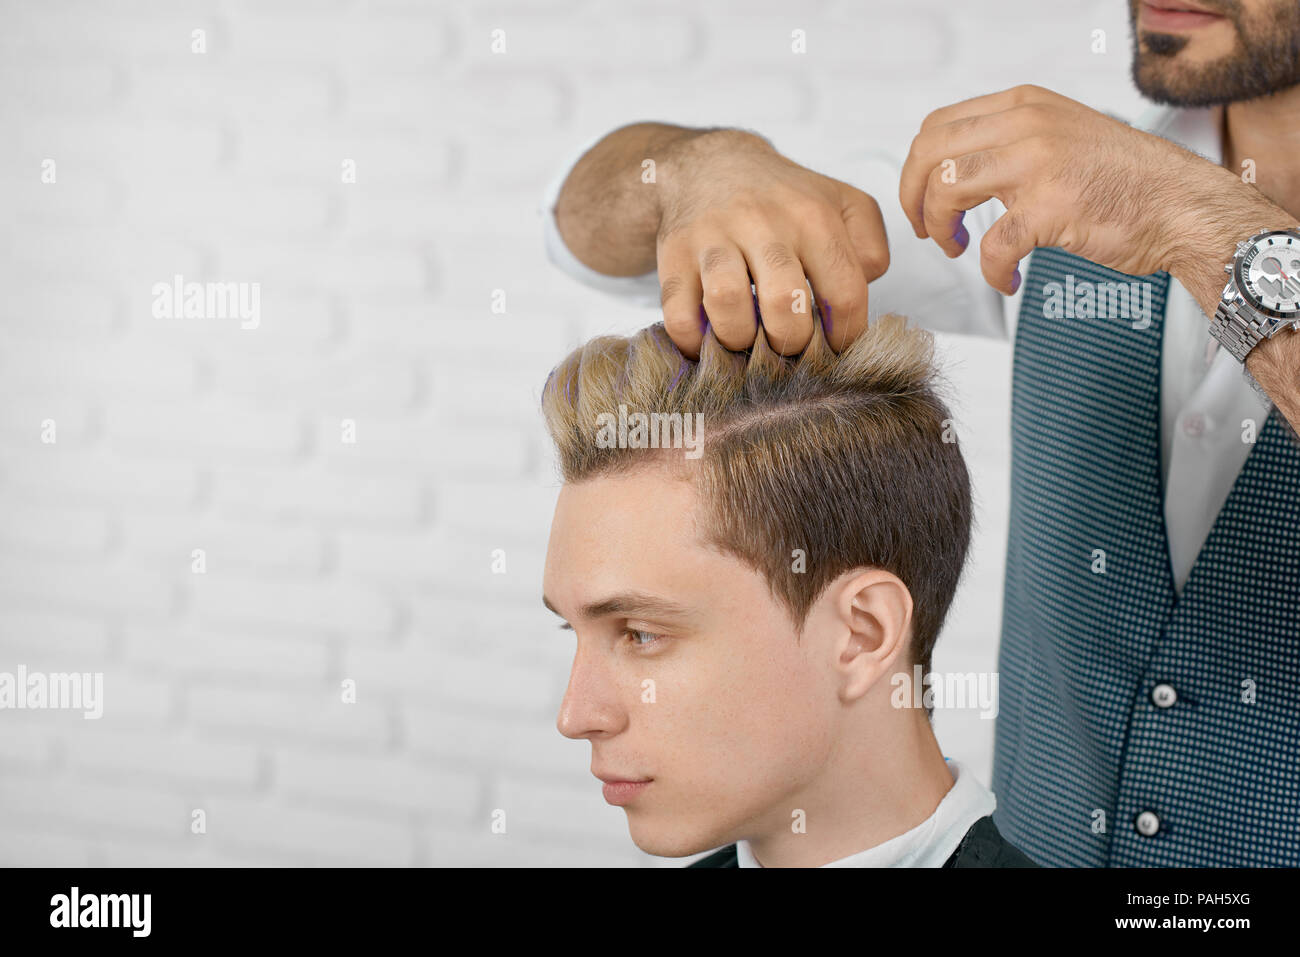 Photo of hair coloring in lilac color process. Hairdresser applying colorful tint on model's hair, working on white brick studio background. Hairstylist wearing white shirt and grey waistcoat. - Stock Image